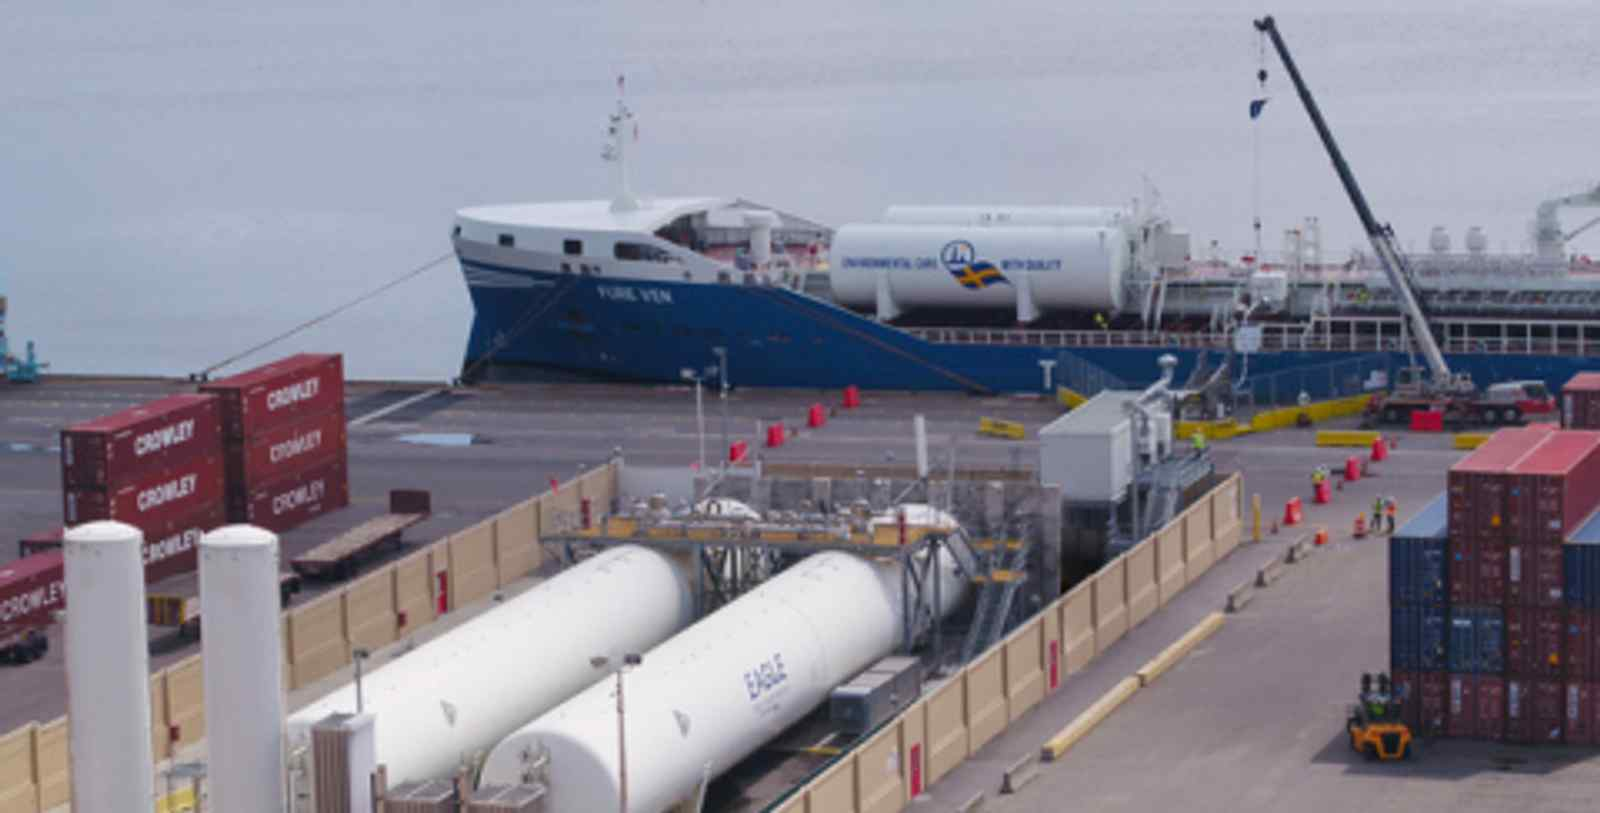 Key milestone achieved by Furetank, Eagle LNG and GAC during the refuelling of FURE VEN